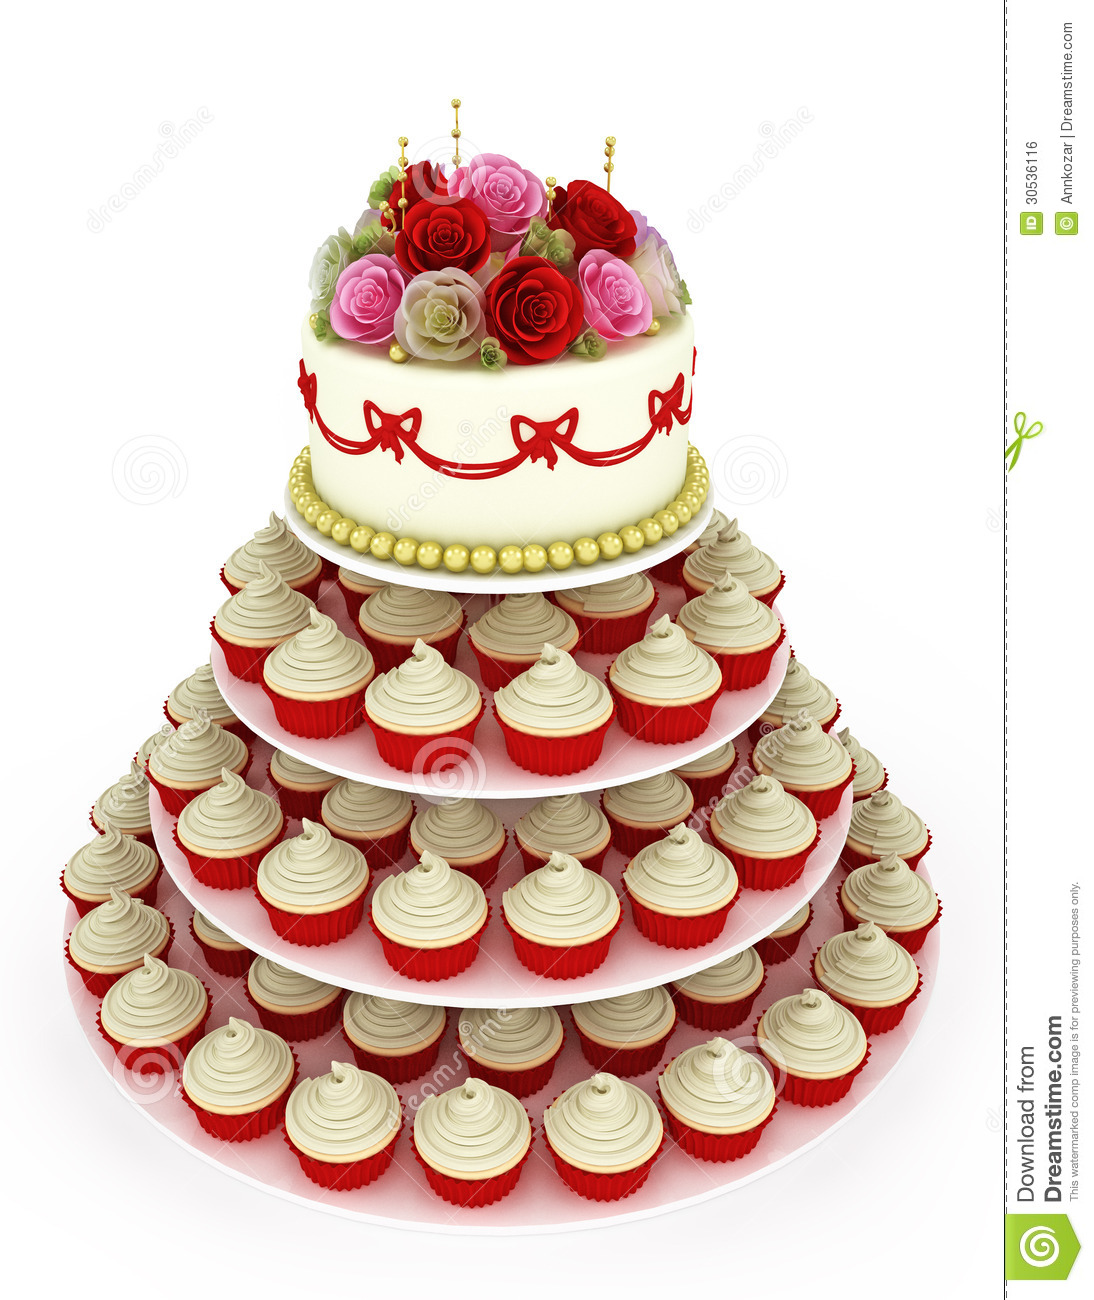 wedding celebration cake with cupcakes stock illustration